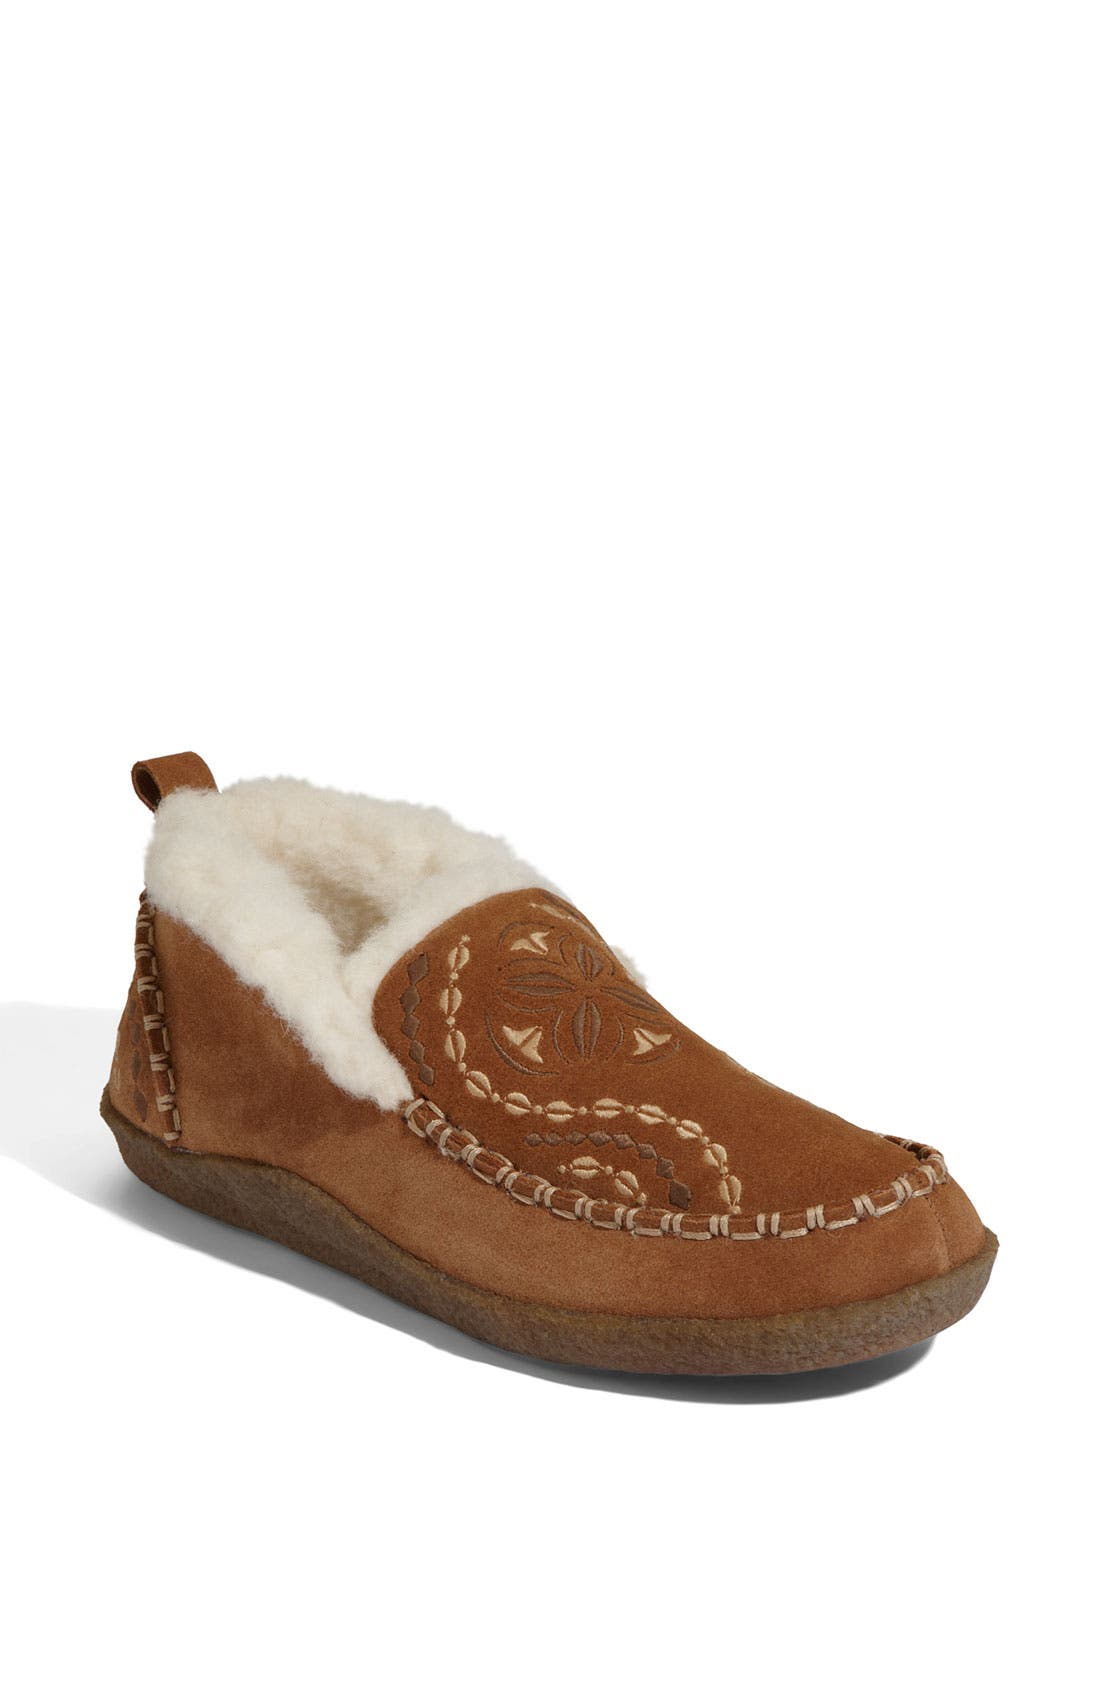 Main Image - Acorn 'Mikka' Slipper